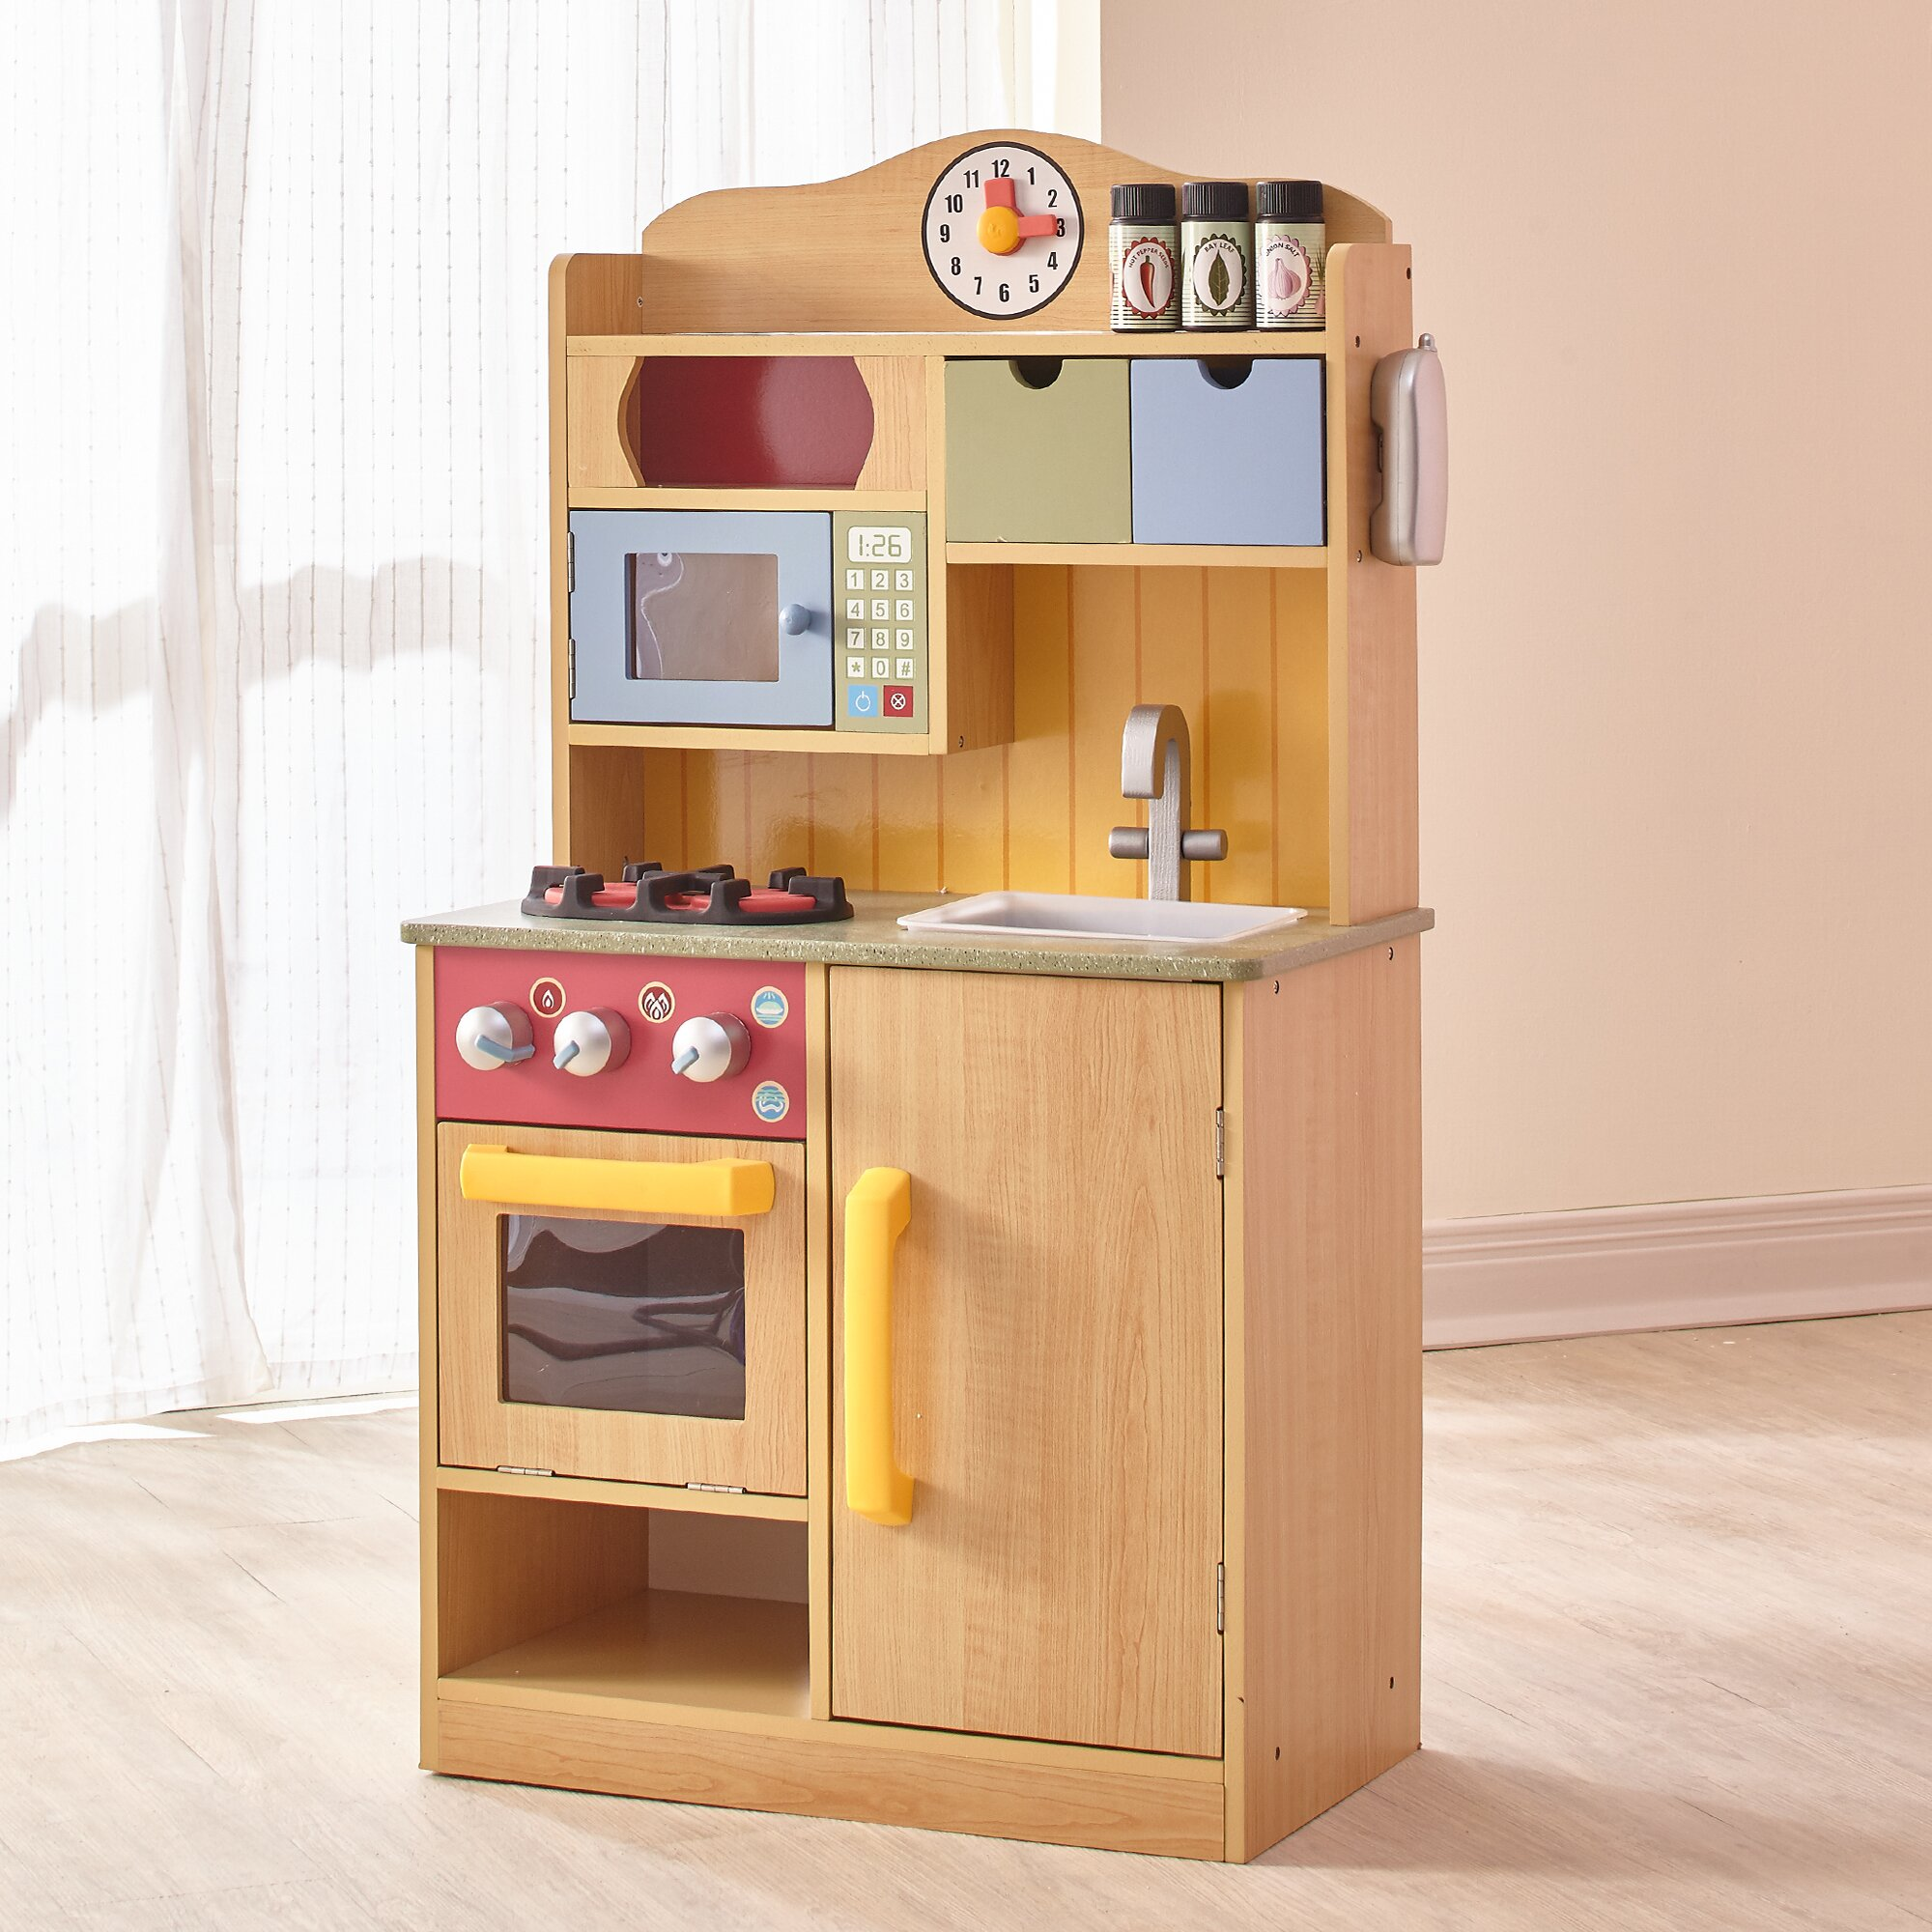 Teamson Kids Little Chef Wooden Play Kitchen With Accessories Reviews Wayfair